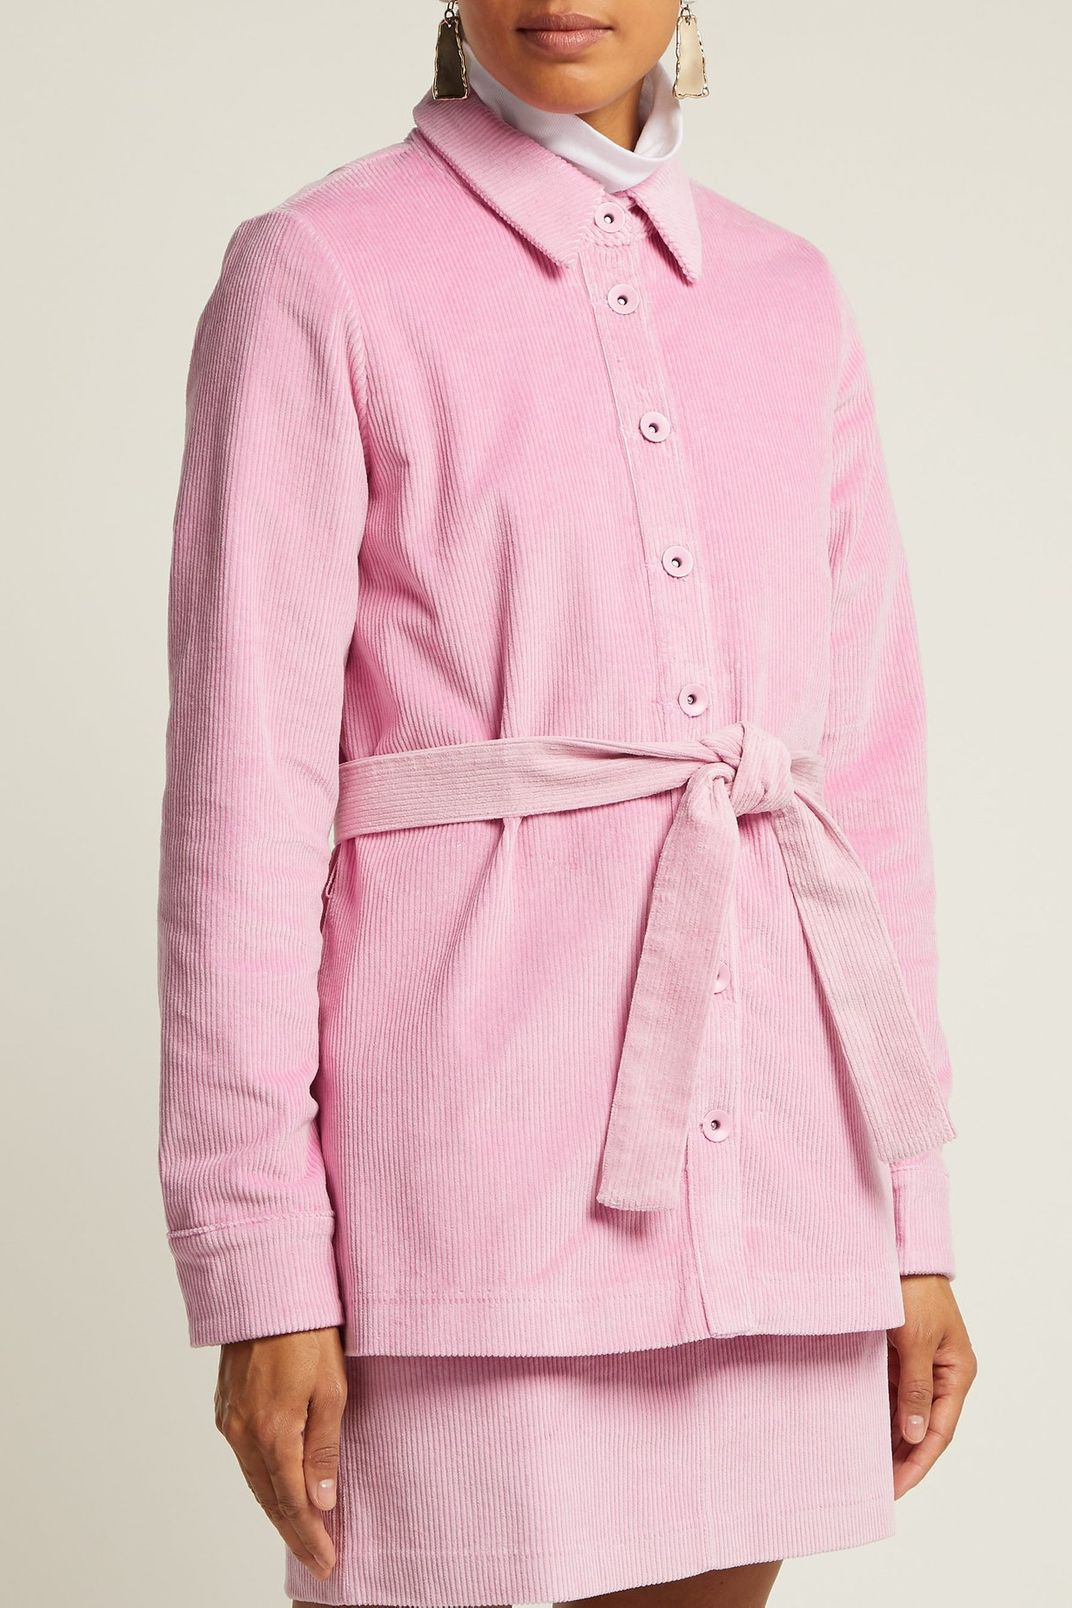 Staud Haley Corduroy Shirt Jacket